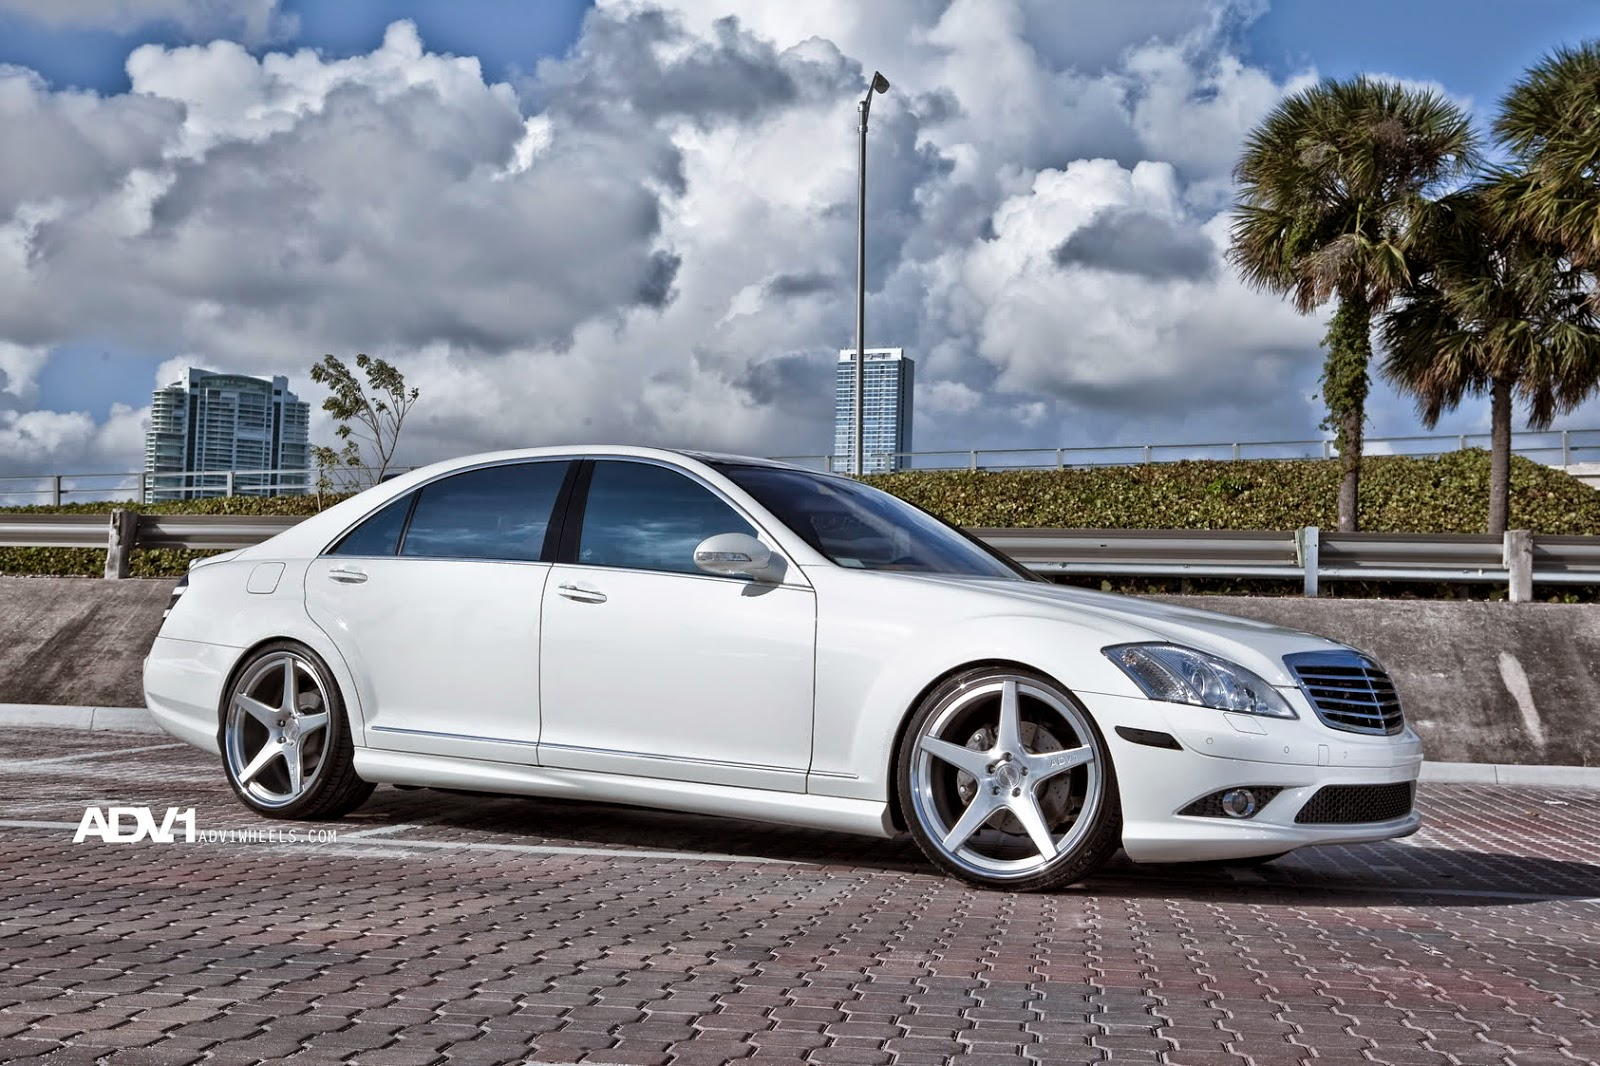 Mercedes benz w221 s550 on adv 1 wheels benztuning for Mercedes benz s550 rims